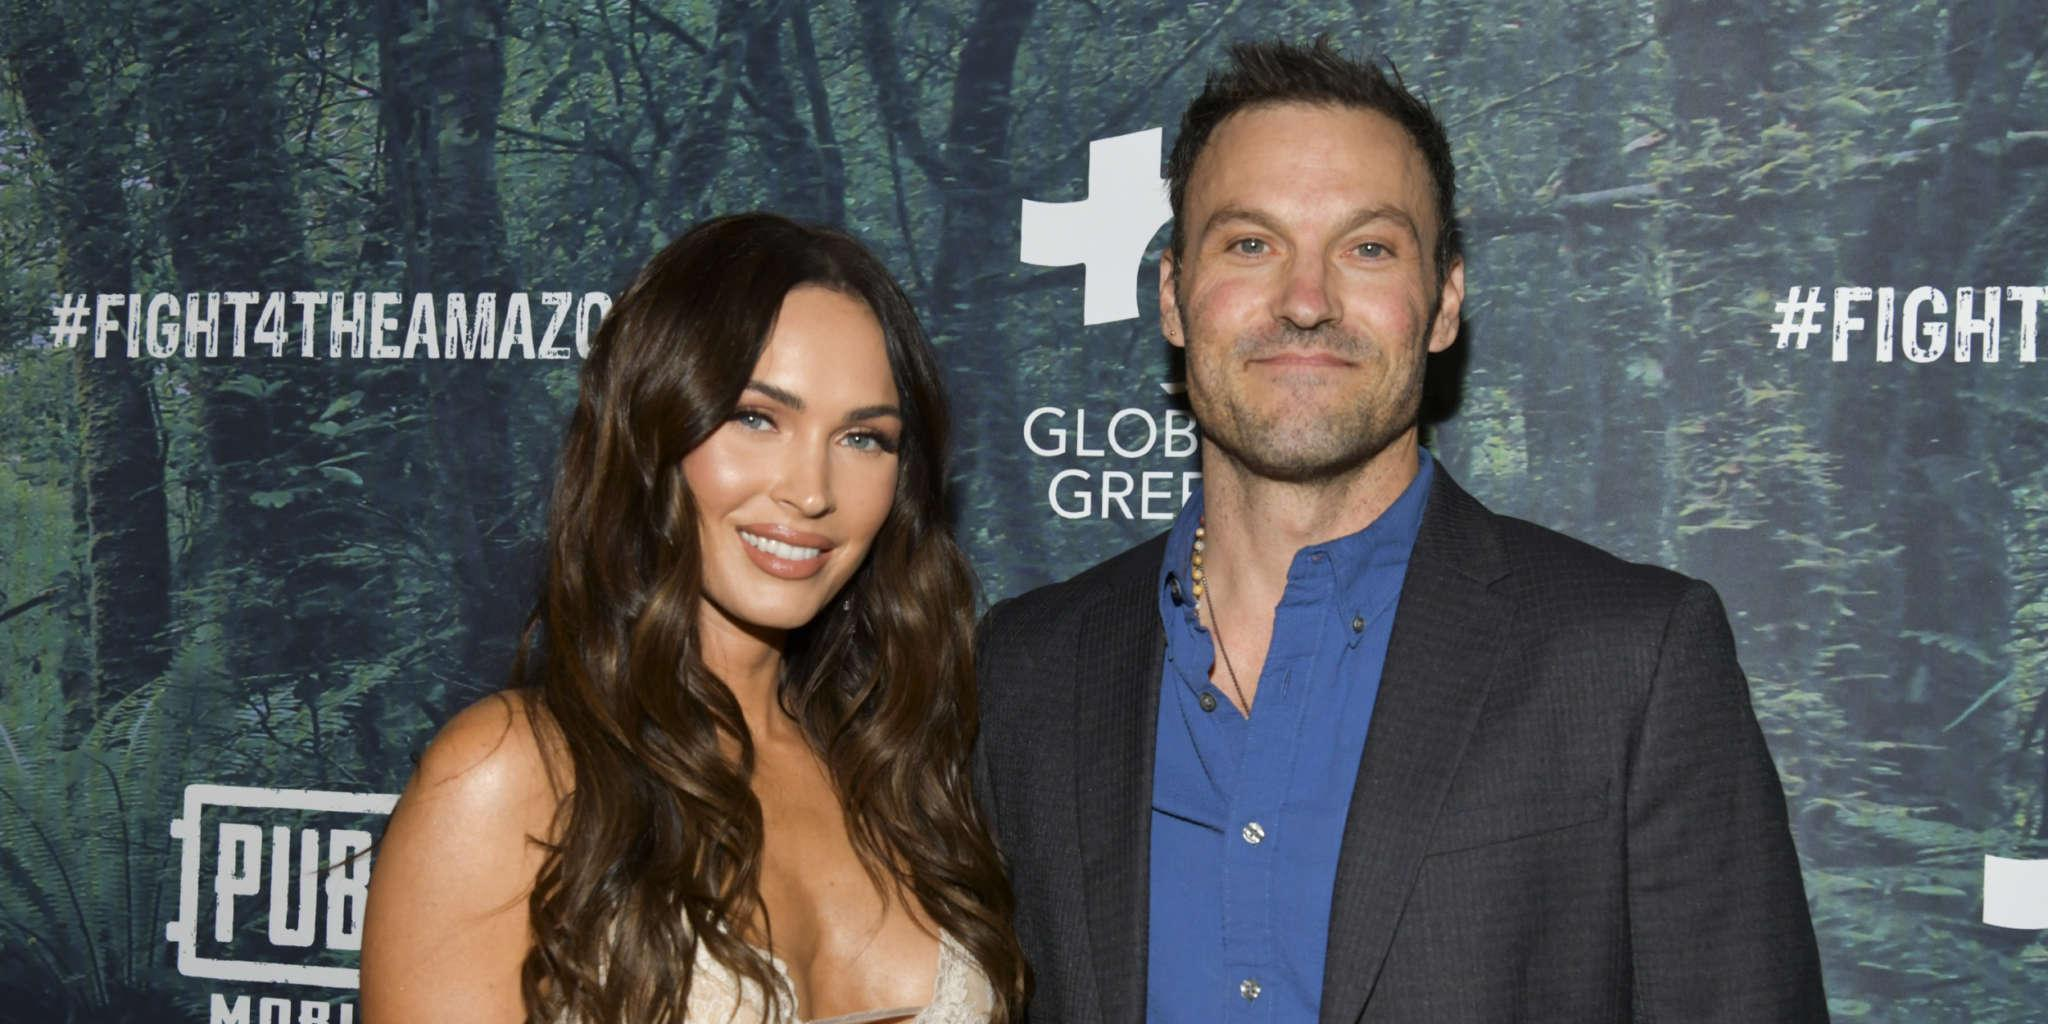 Megan Fox Drags Brian Austin Green For Making Her Look Like An 'Absent Mother'